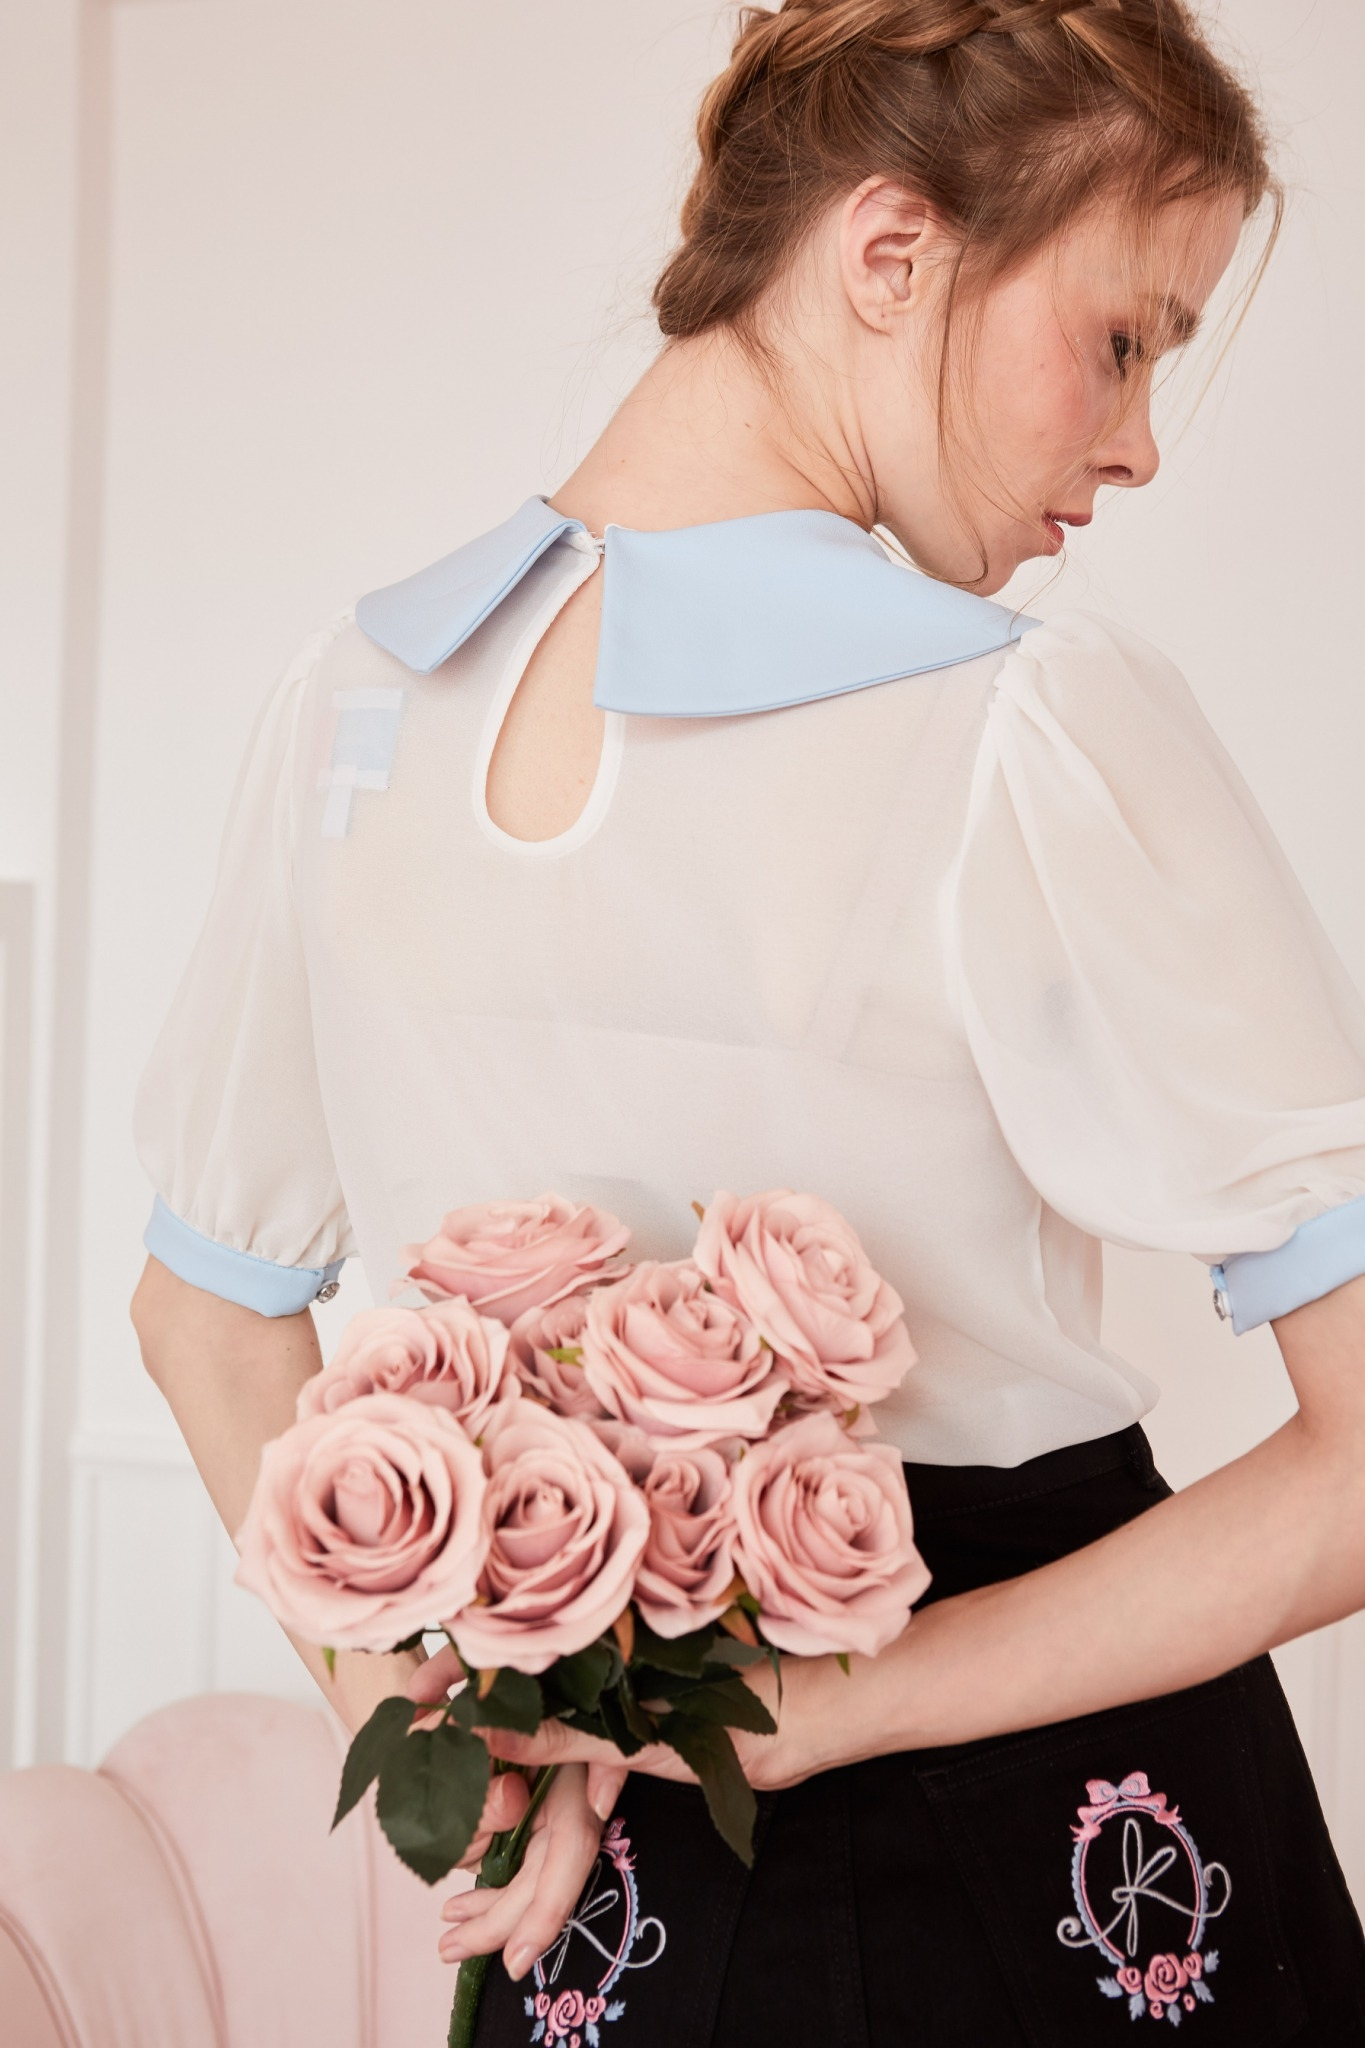 JR04-BLU- Juliet's Rose Embroidered Peter Pan Collar Blouse - In Stock 10th March